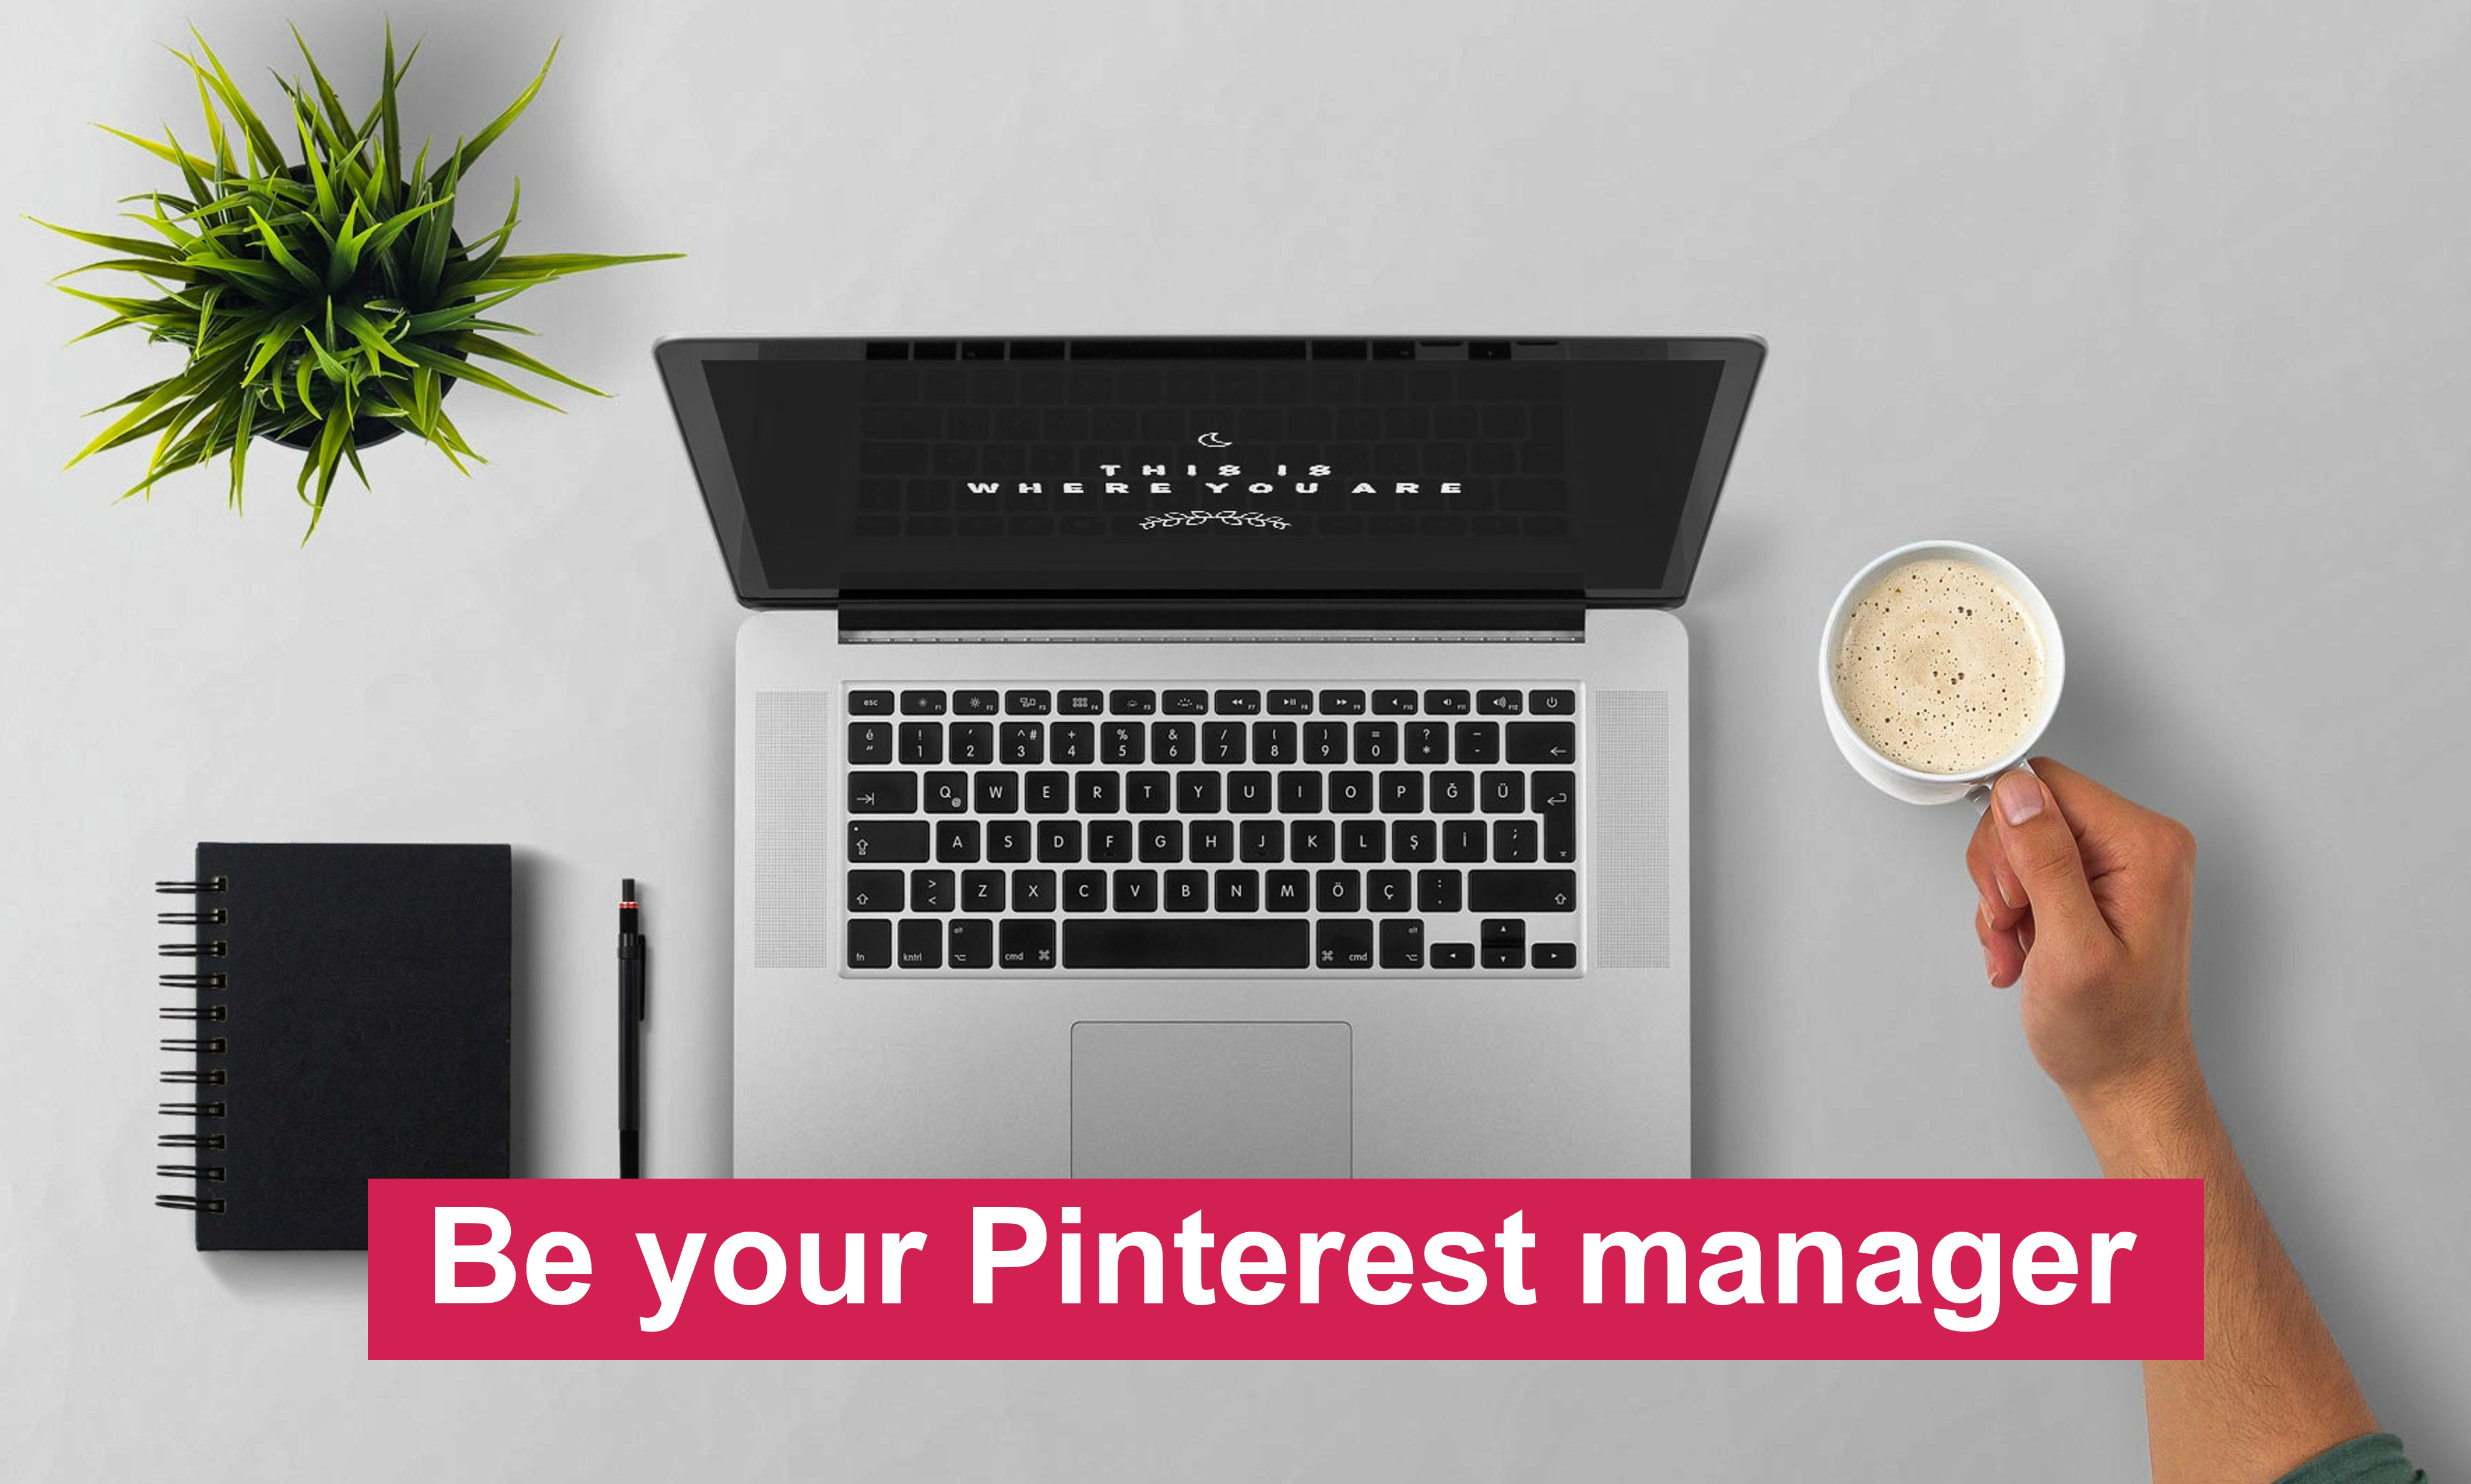 I will be your pinterest manager